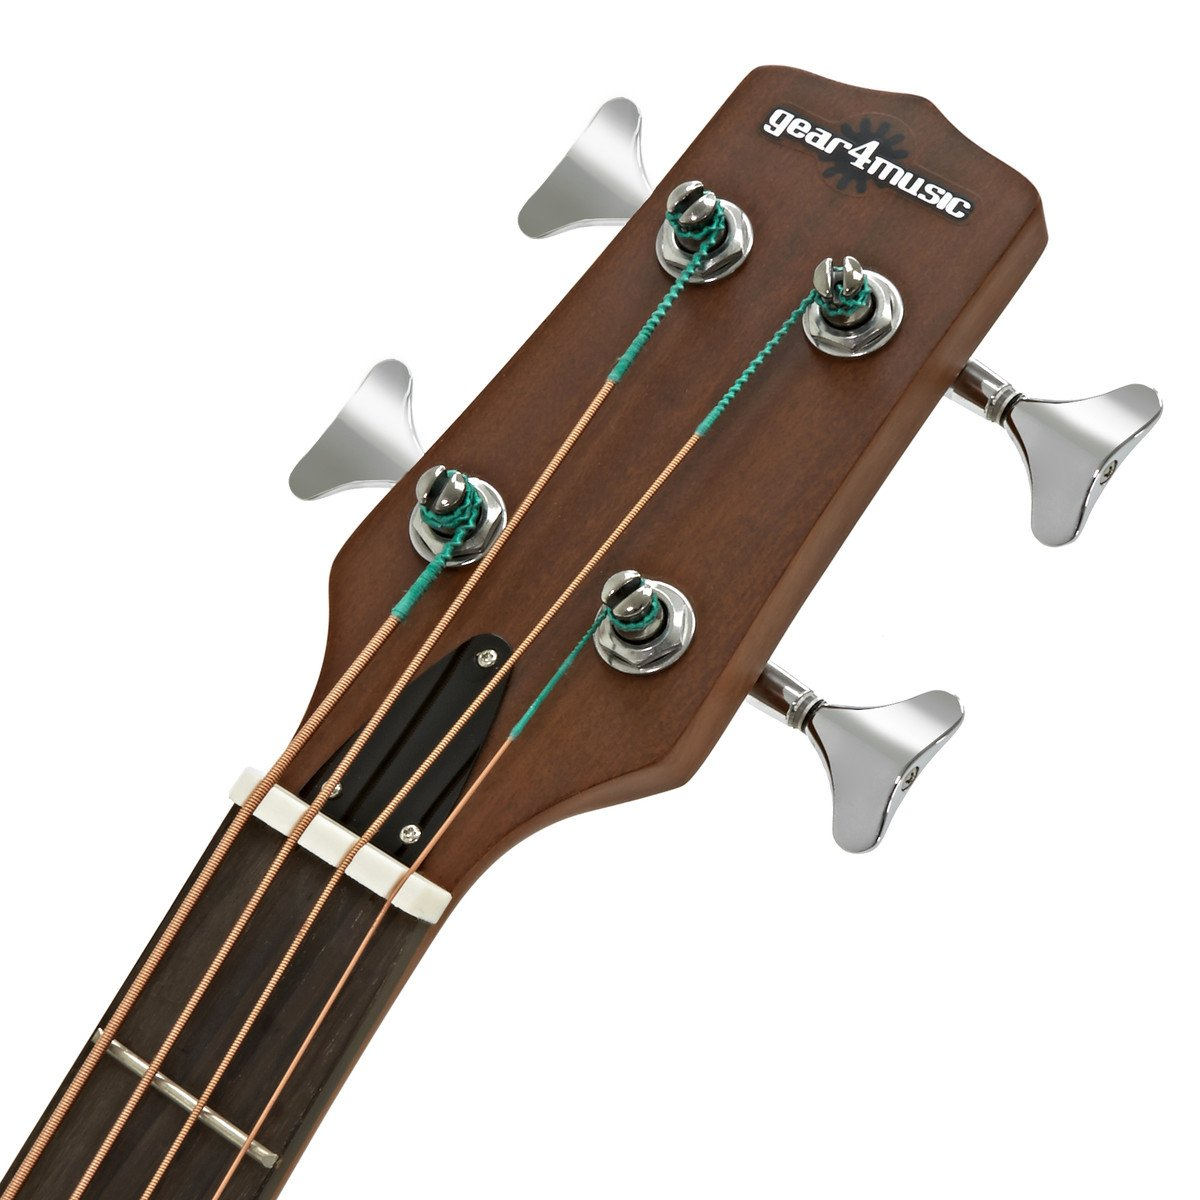 Roundback Electro Acoustic Bass Guitar By Gear4music Gitar String Provit Musik Slm Musical Instruments